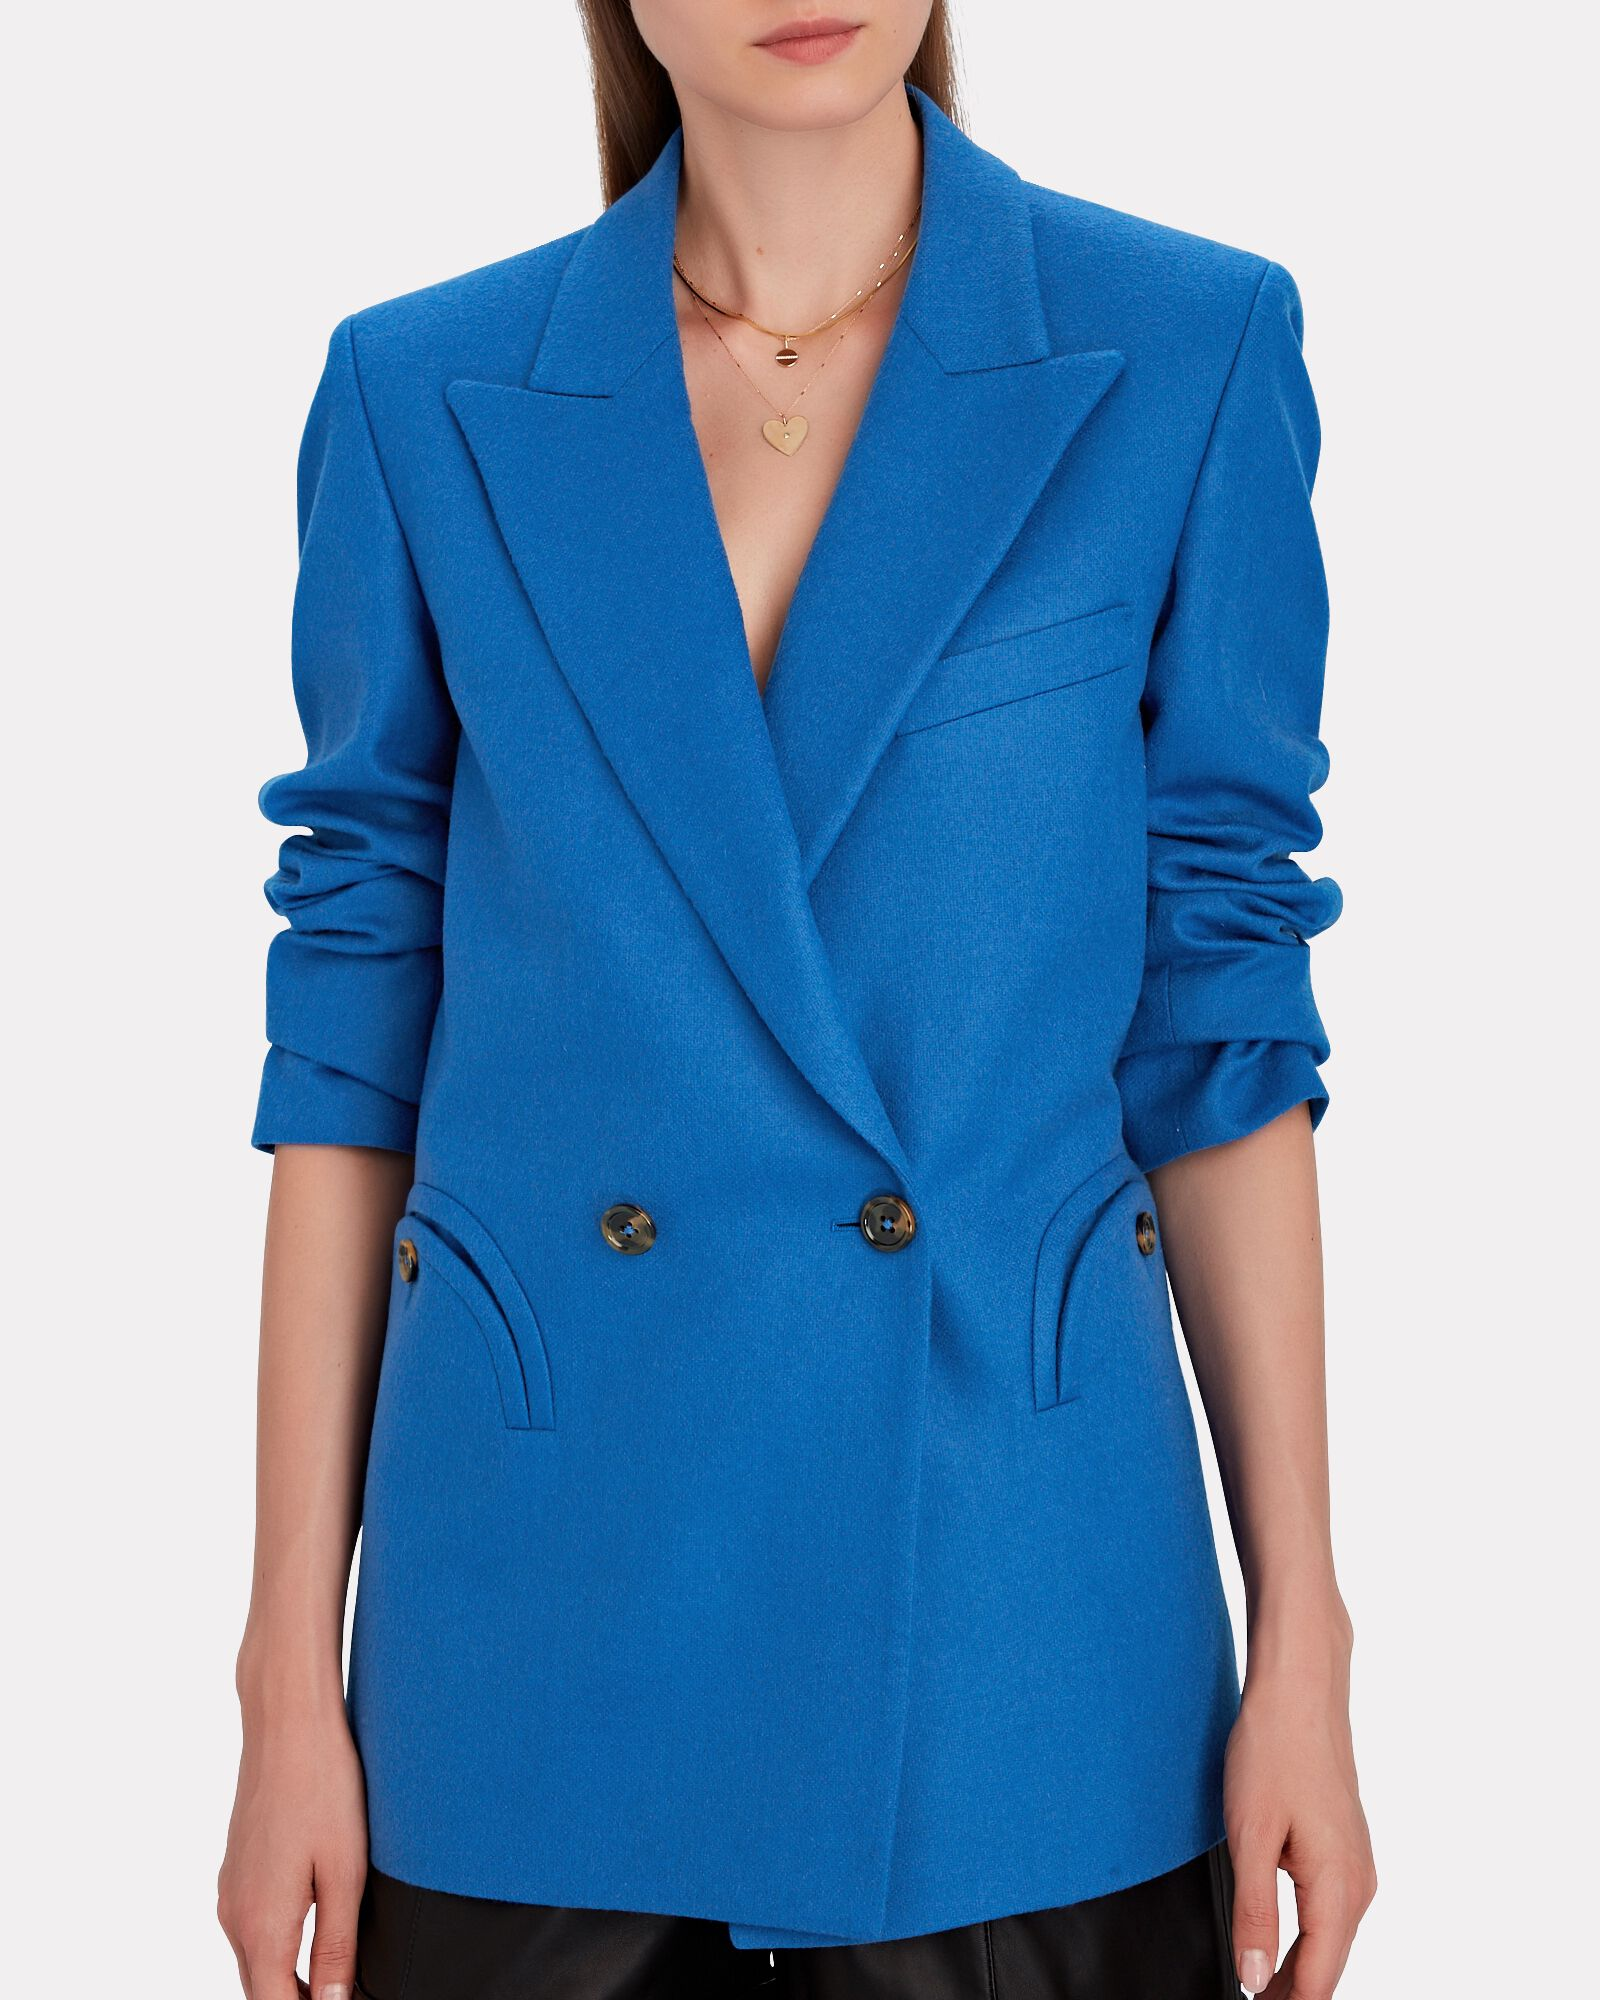 Palmira Everynight Double-Breasted Blazer, BLUE, hi-res